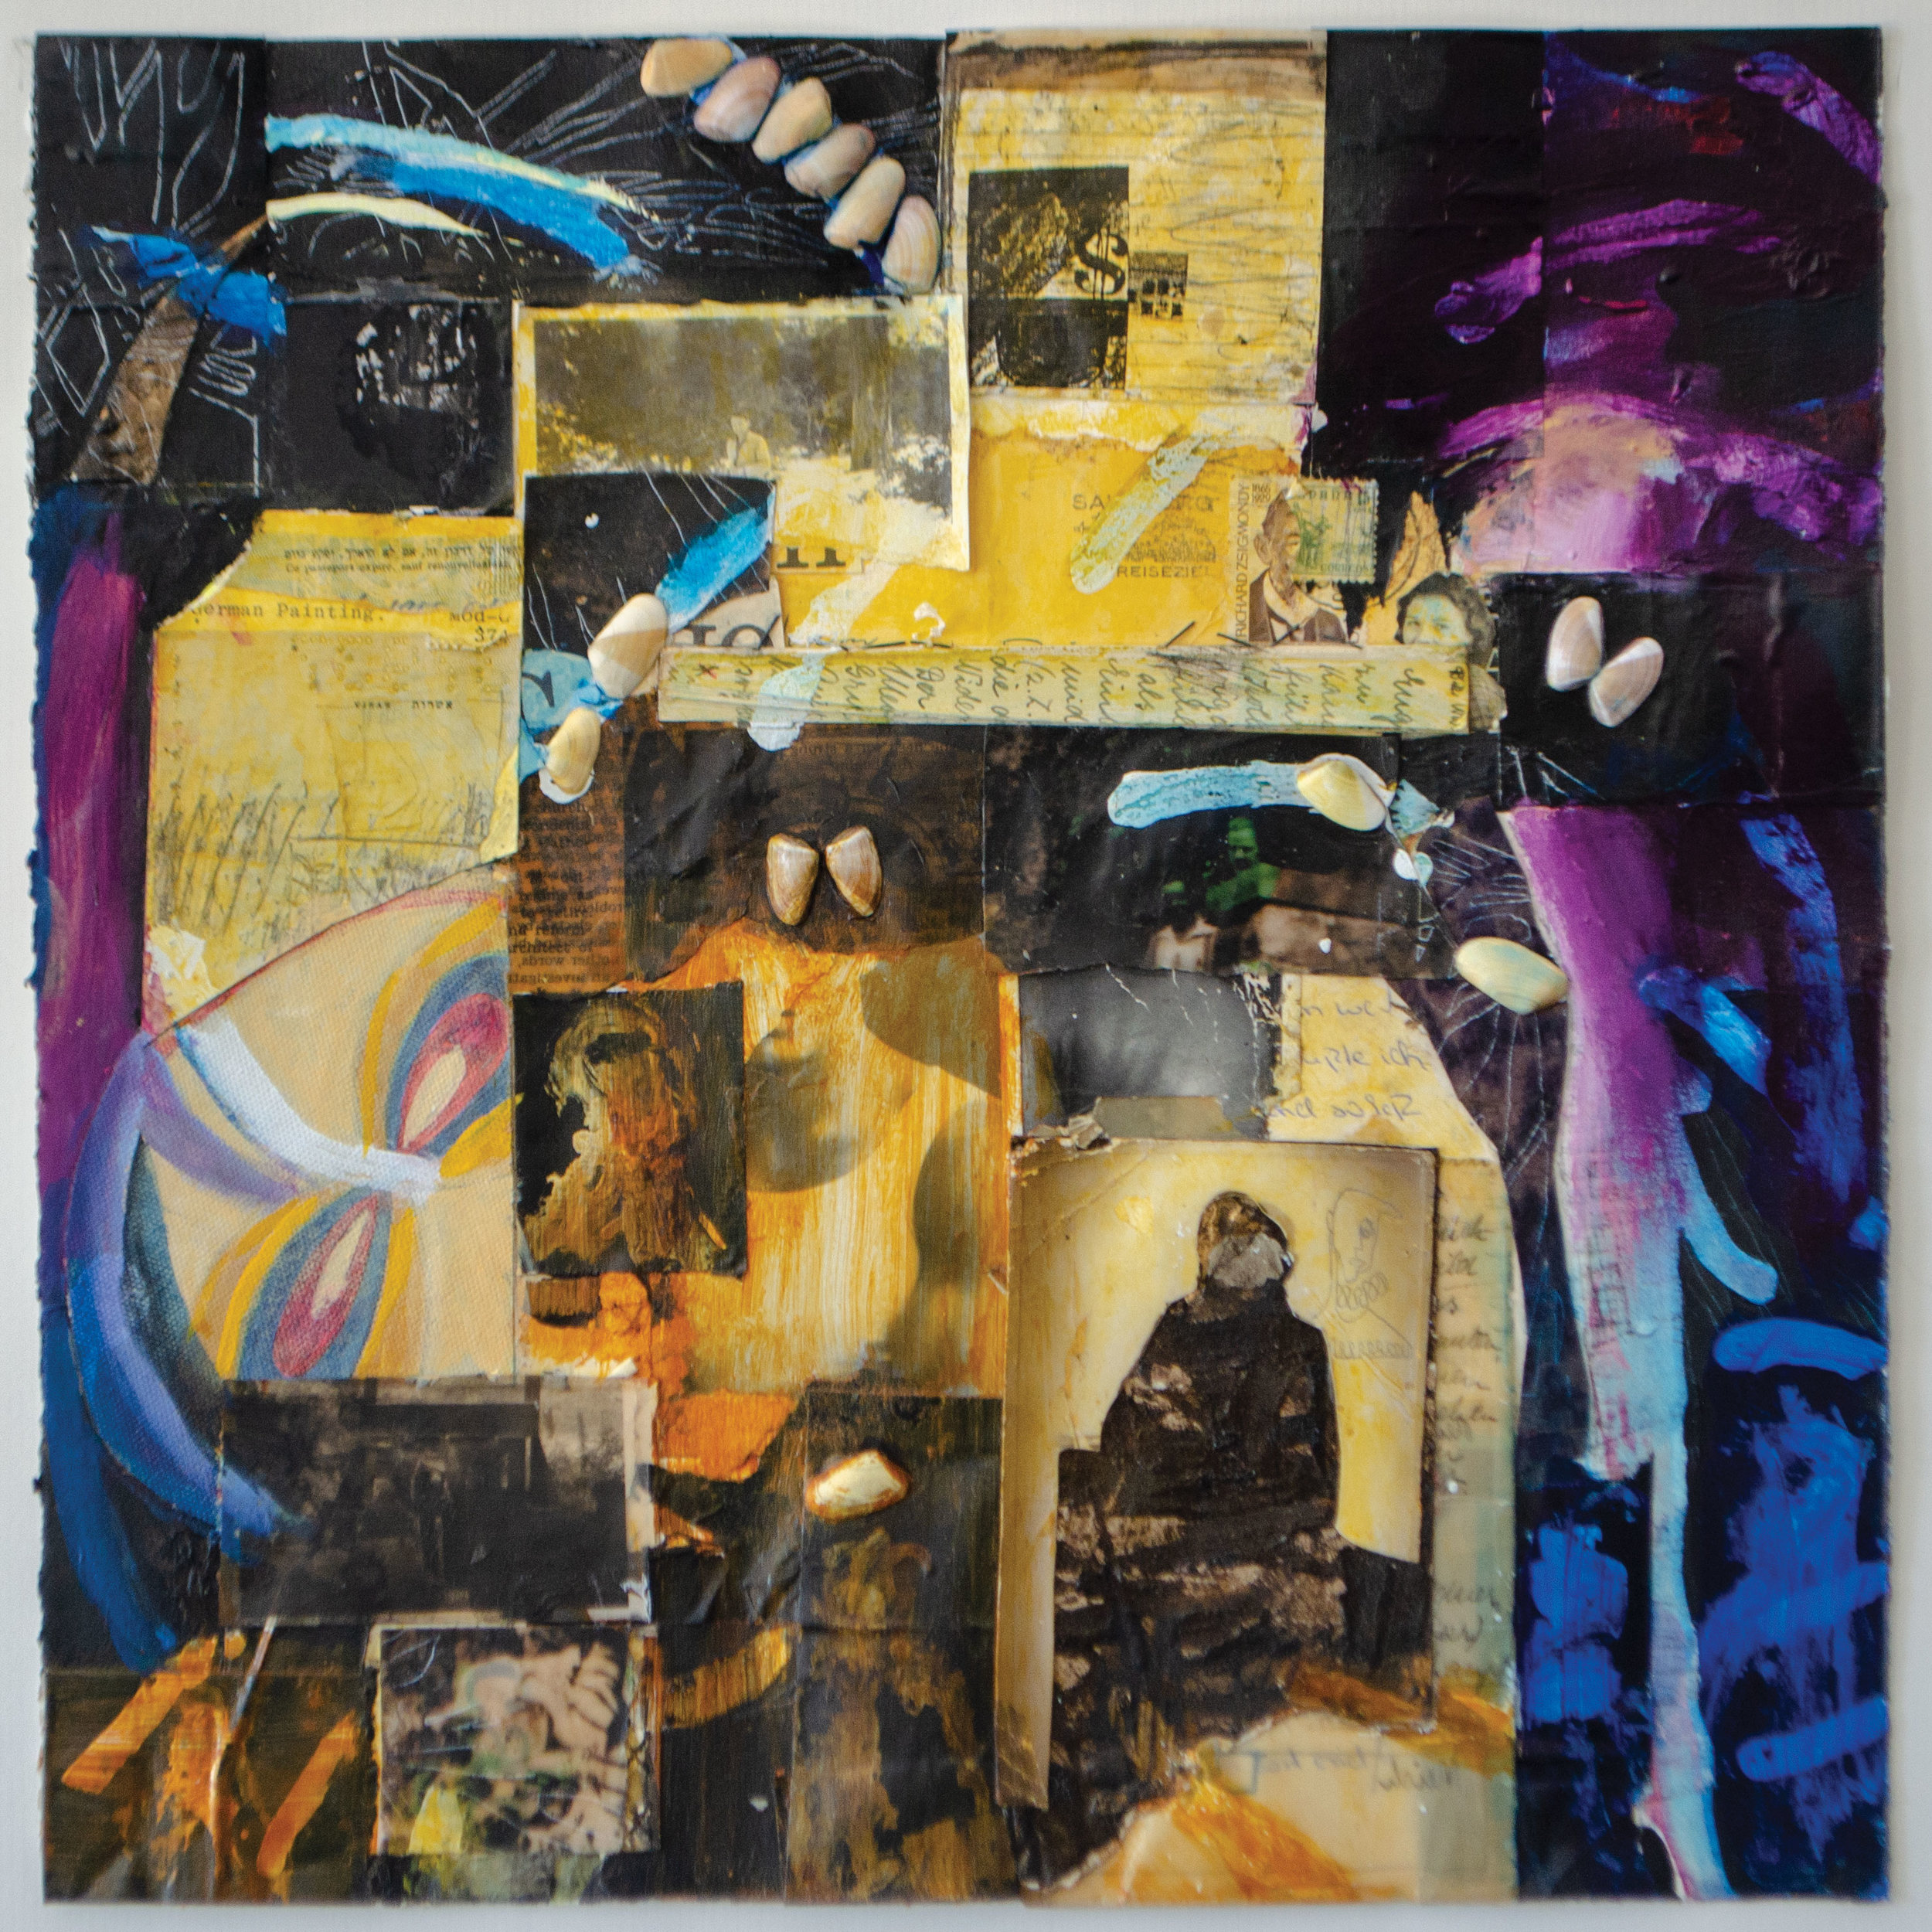 "Dark Matter, 15""x15"", mixed media: S. Portico Bowman, Carlyn Clark, Johnny Fox, Margaret Lazzari, Luke Reichle, Chris Russell Russell, Caryl St. Ama, Nancy Kay Turner"